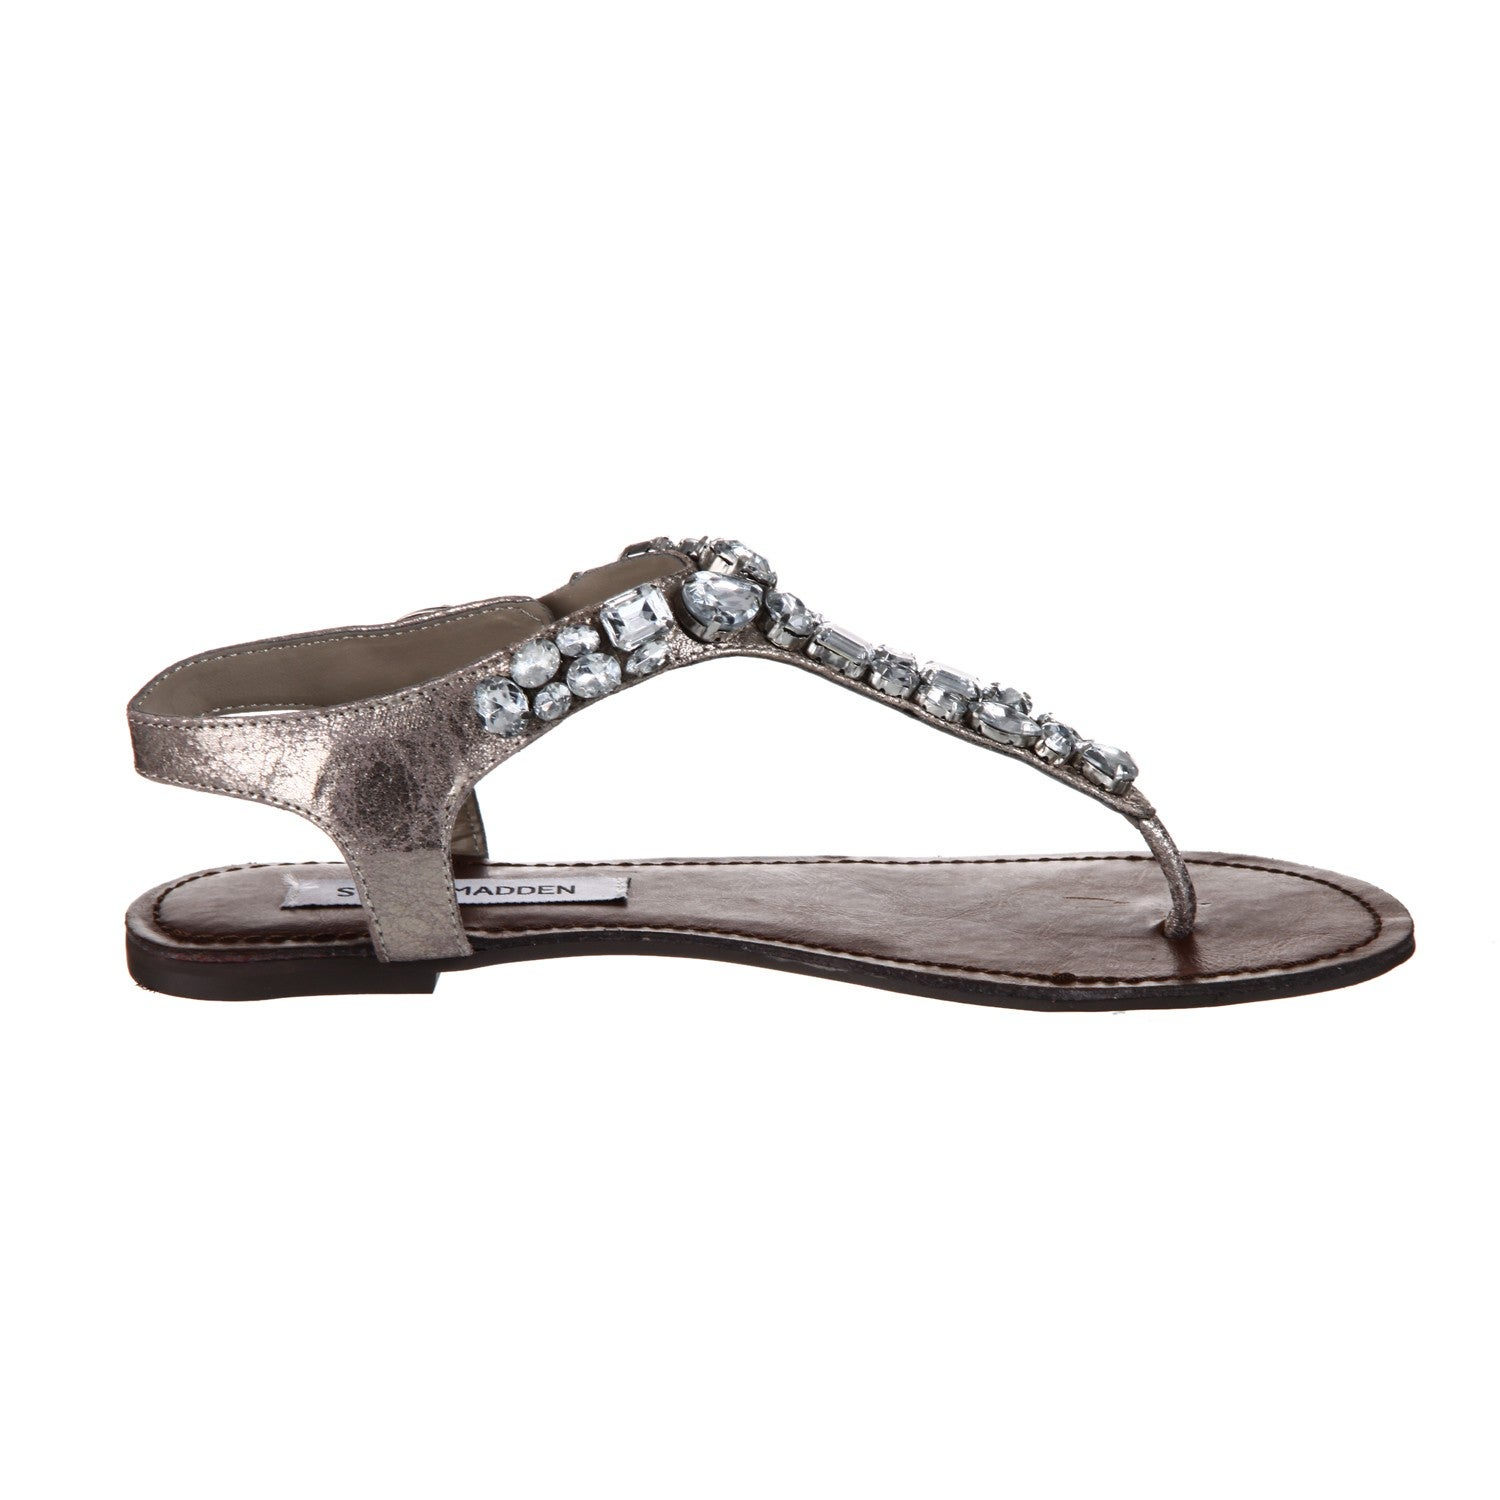 dd50f6219b861e Shop Steve Madden Women s  Groom  Sandals - Free Shipping Today - Overstock  - 6578555